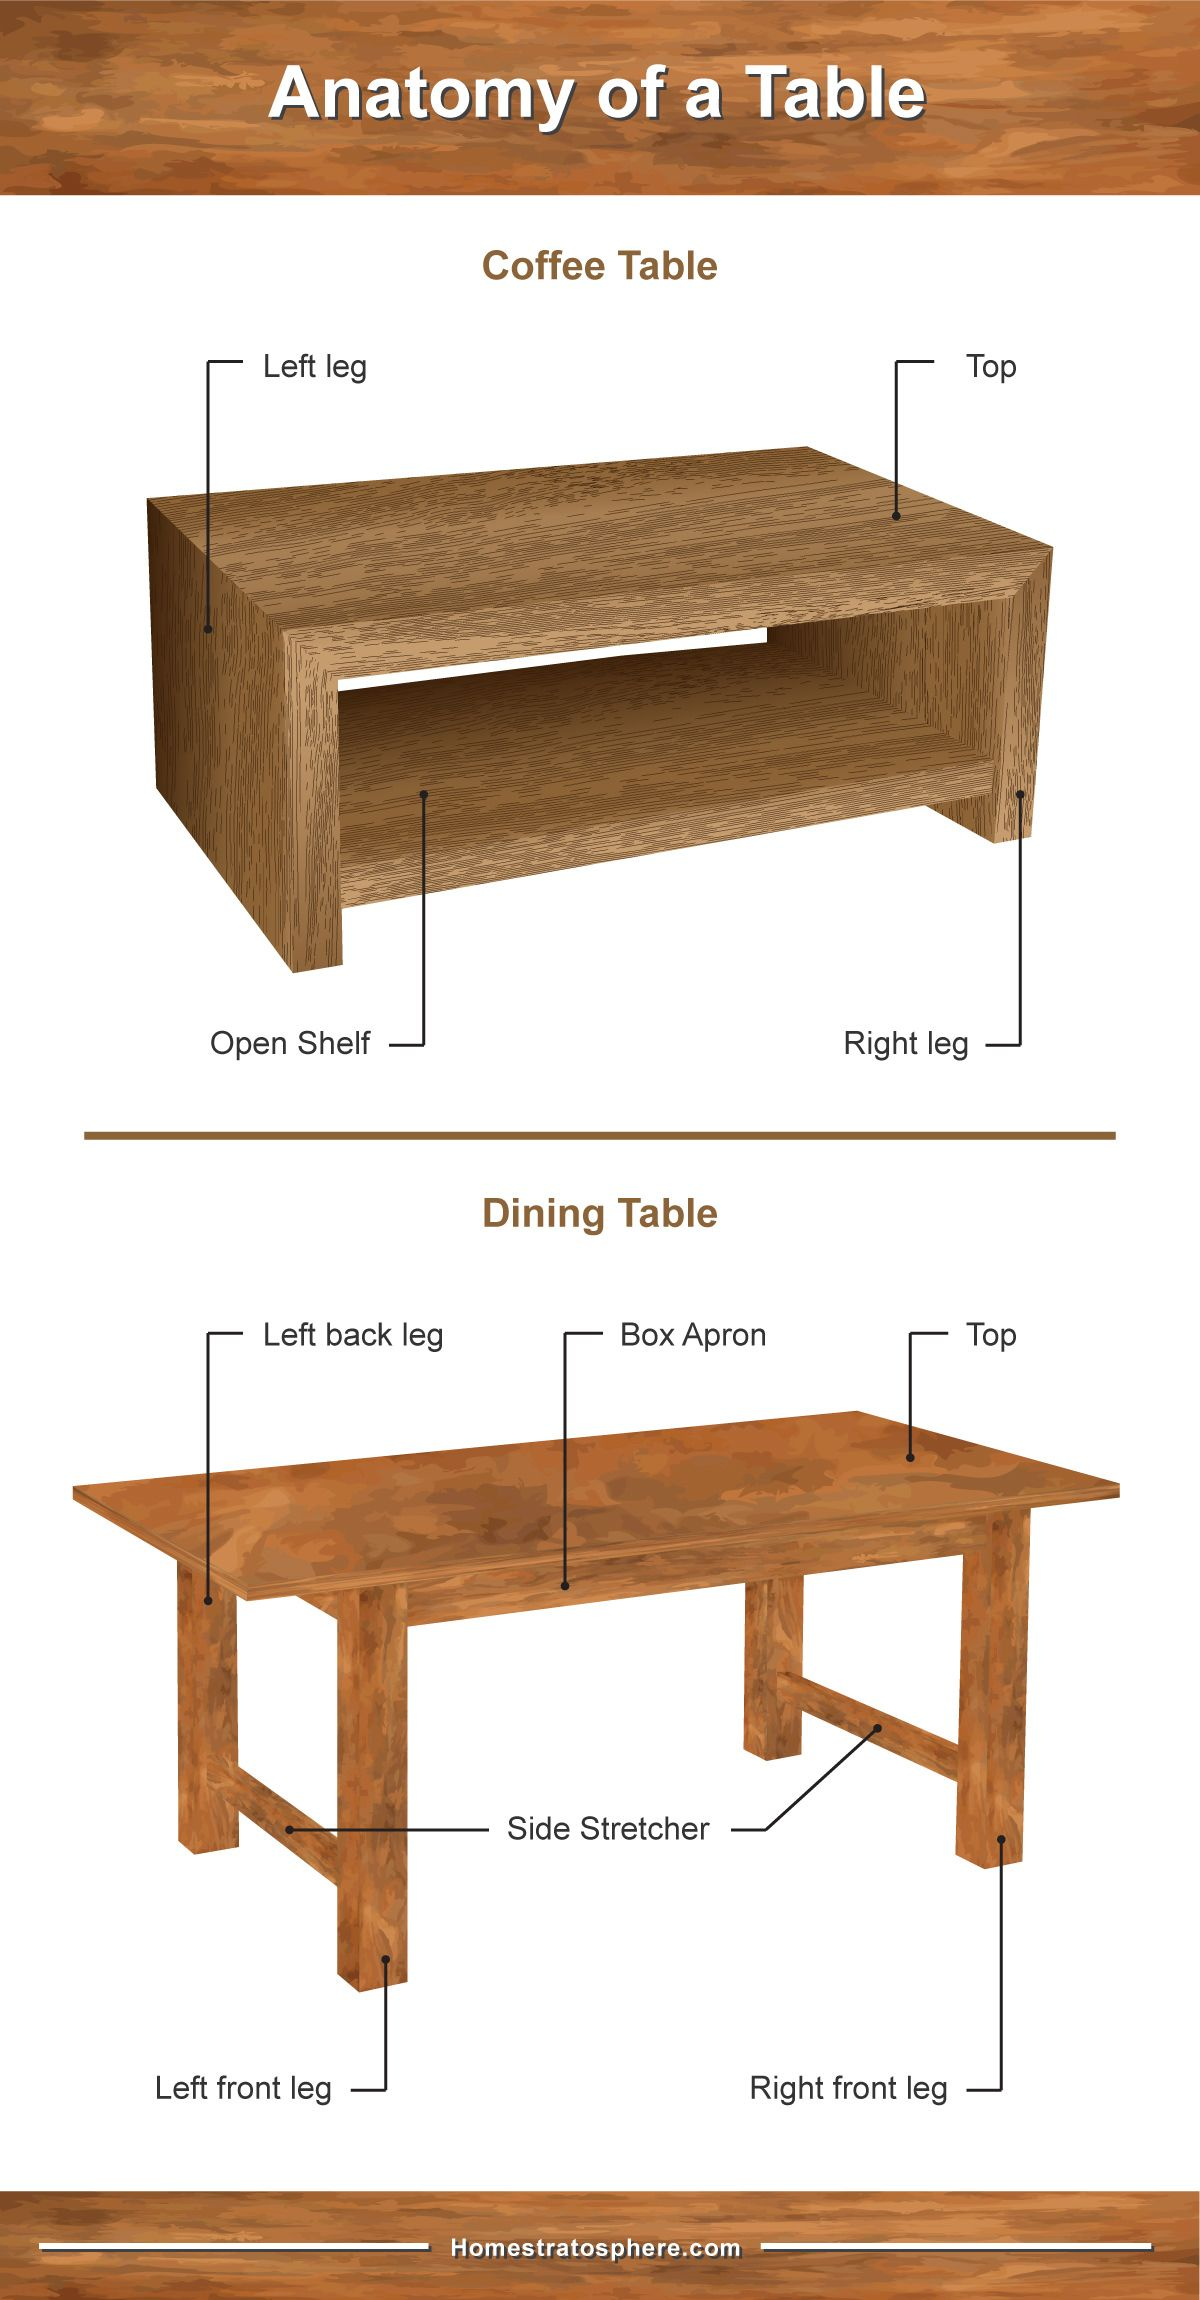 Parts Of A Table Dining Room And Coffee Table Diagrams Coffee Table Table Dining Room Table